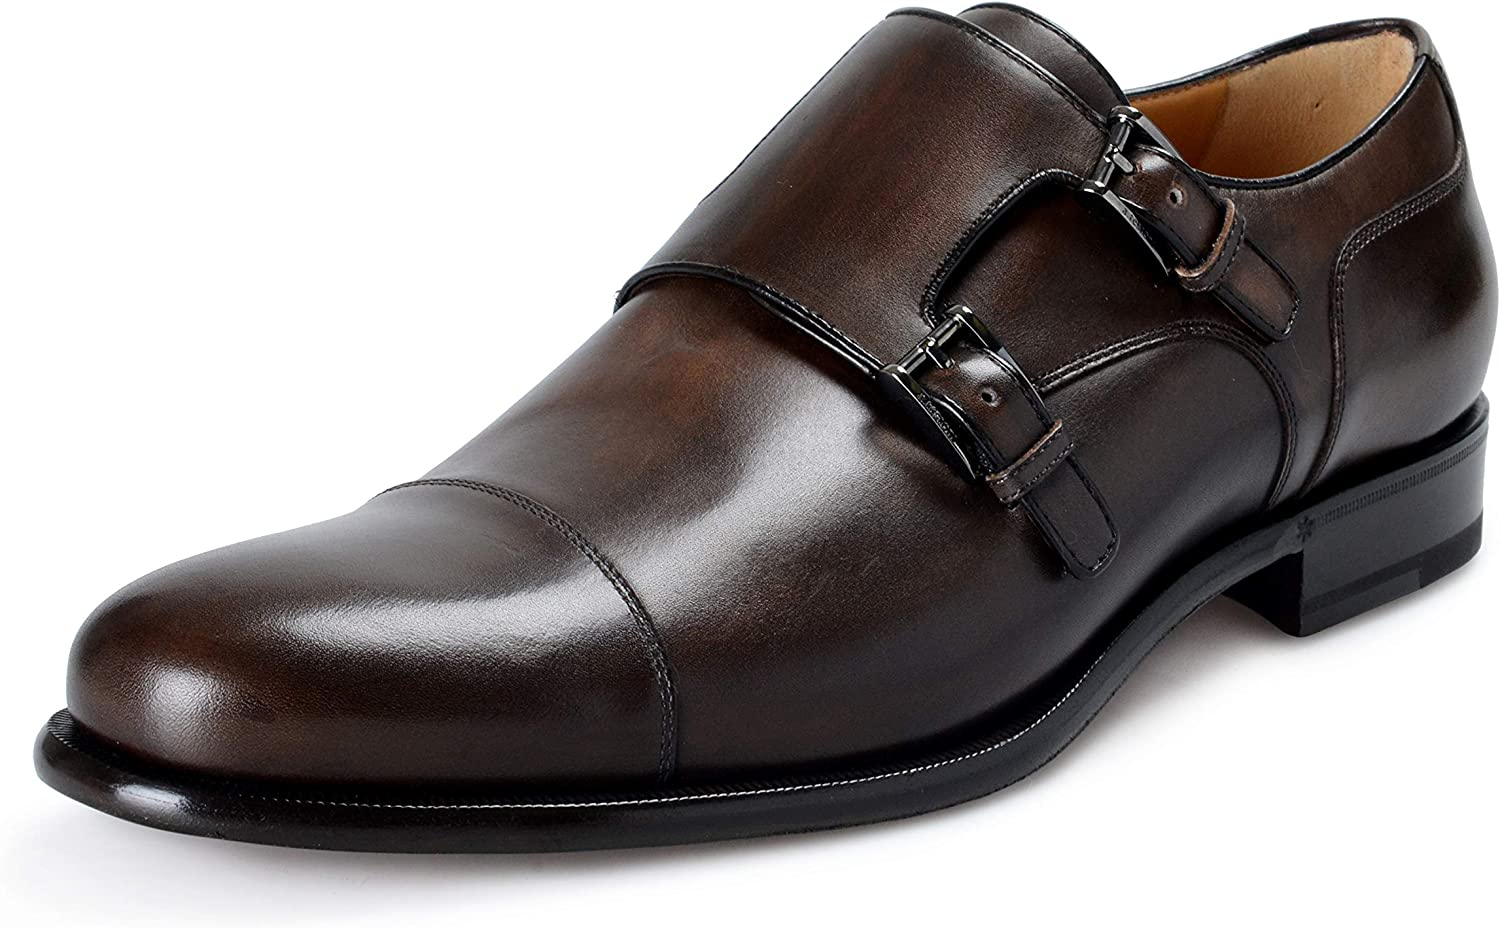 Leather Double Buckle Loafers Slip